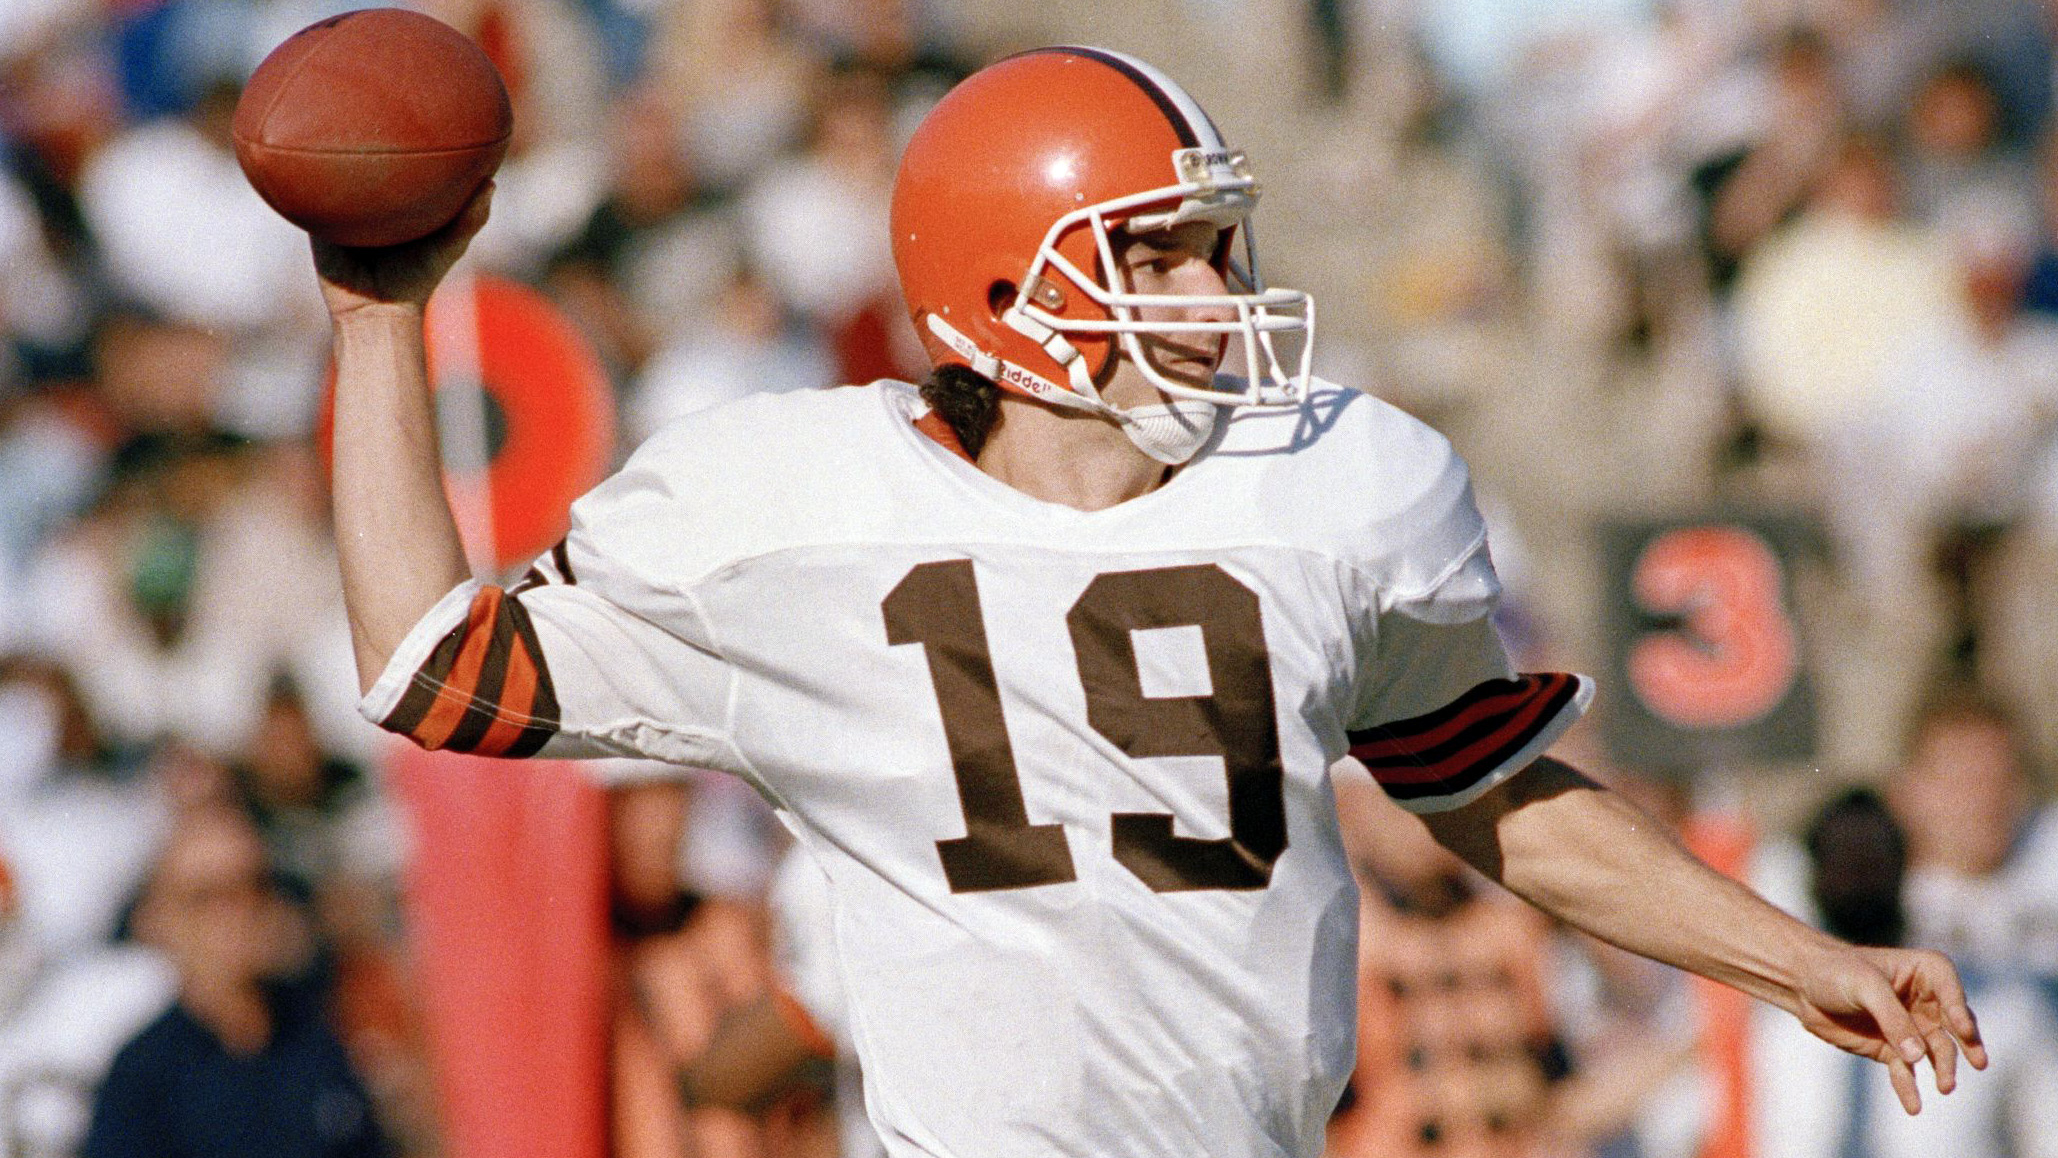 Hear Browns legend Bernie Kosar & broadcaster Jim Donovan's new SiriusXM show 'Dawg Pound Radio' | Hear & Now